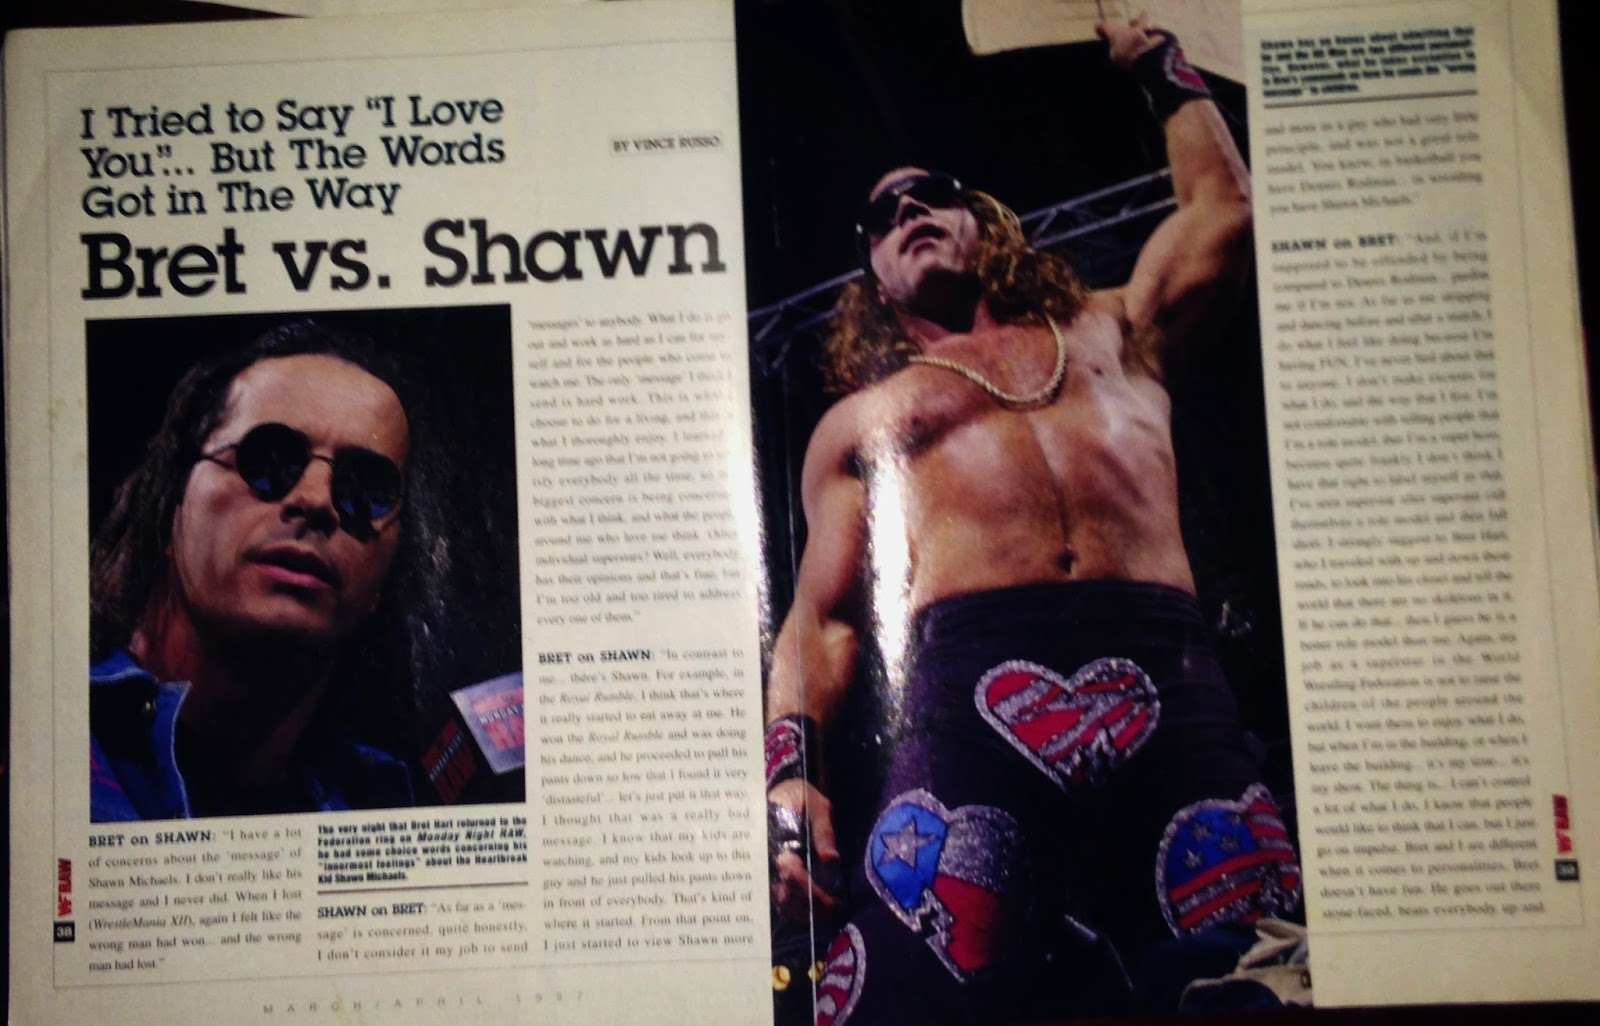 WWE - WWF RAW MAGAZINE 1997: Bret vs. Shawn war of words